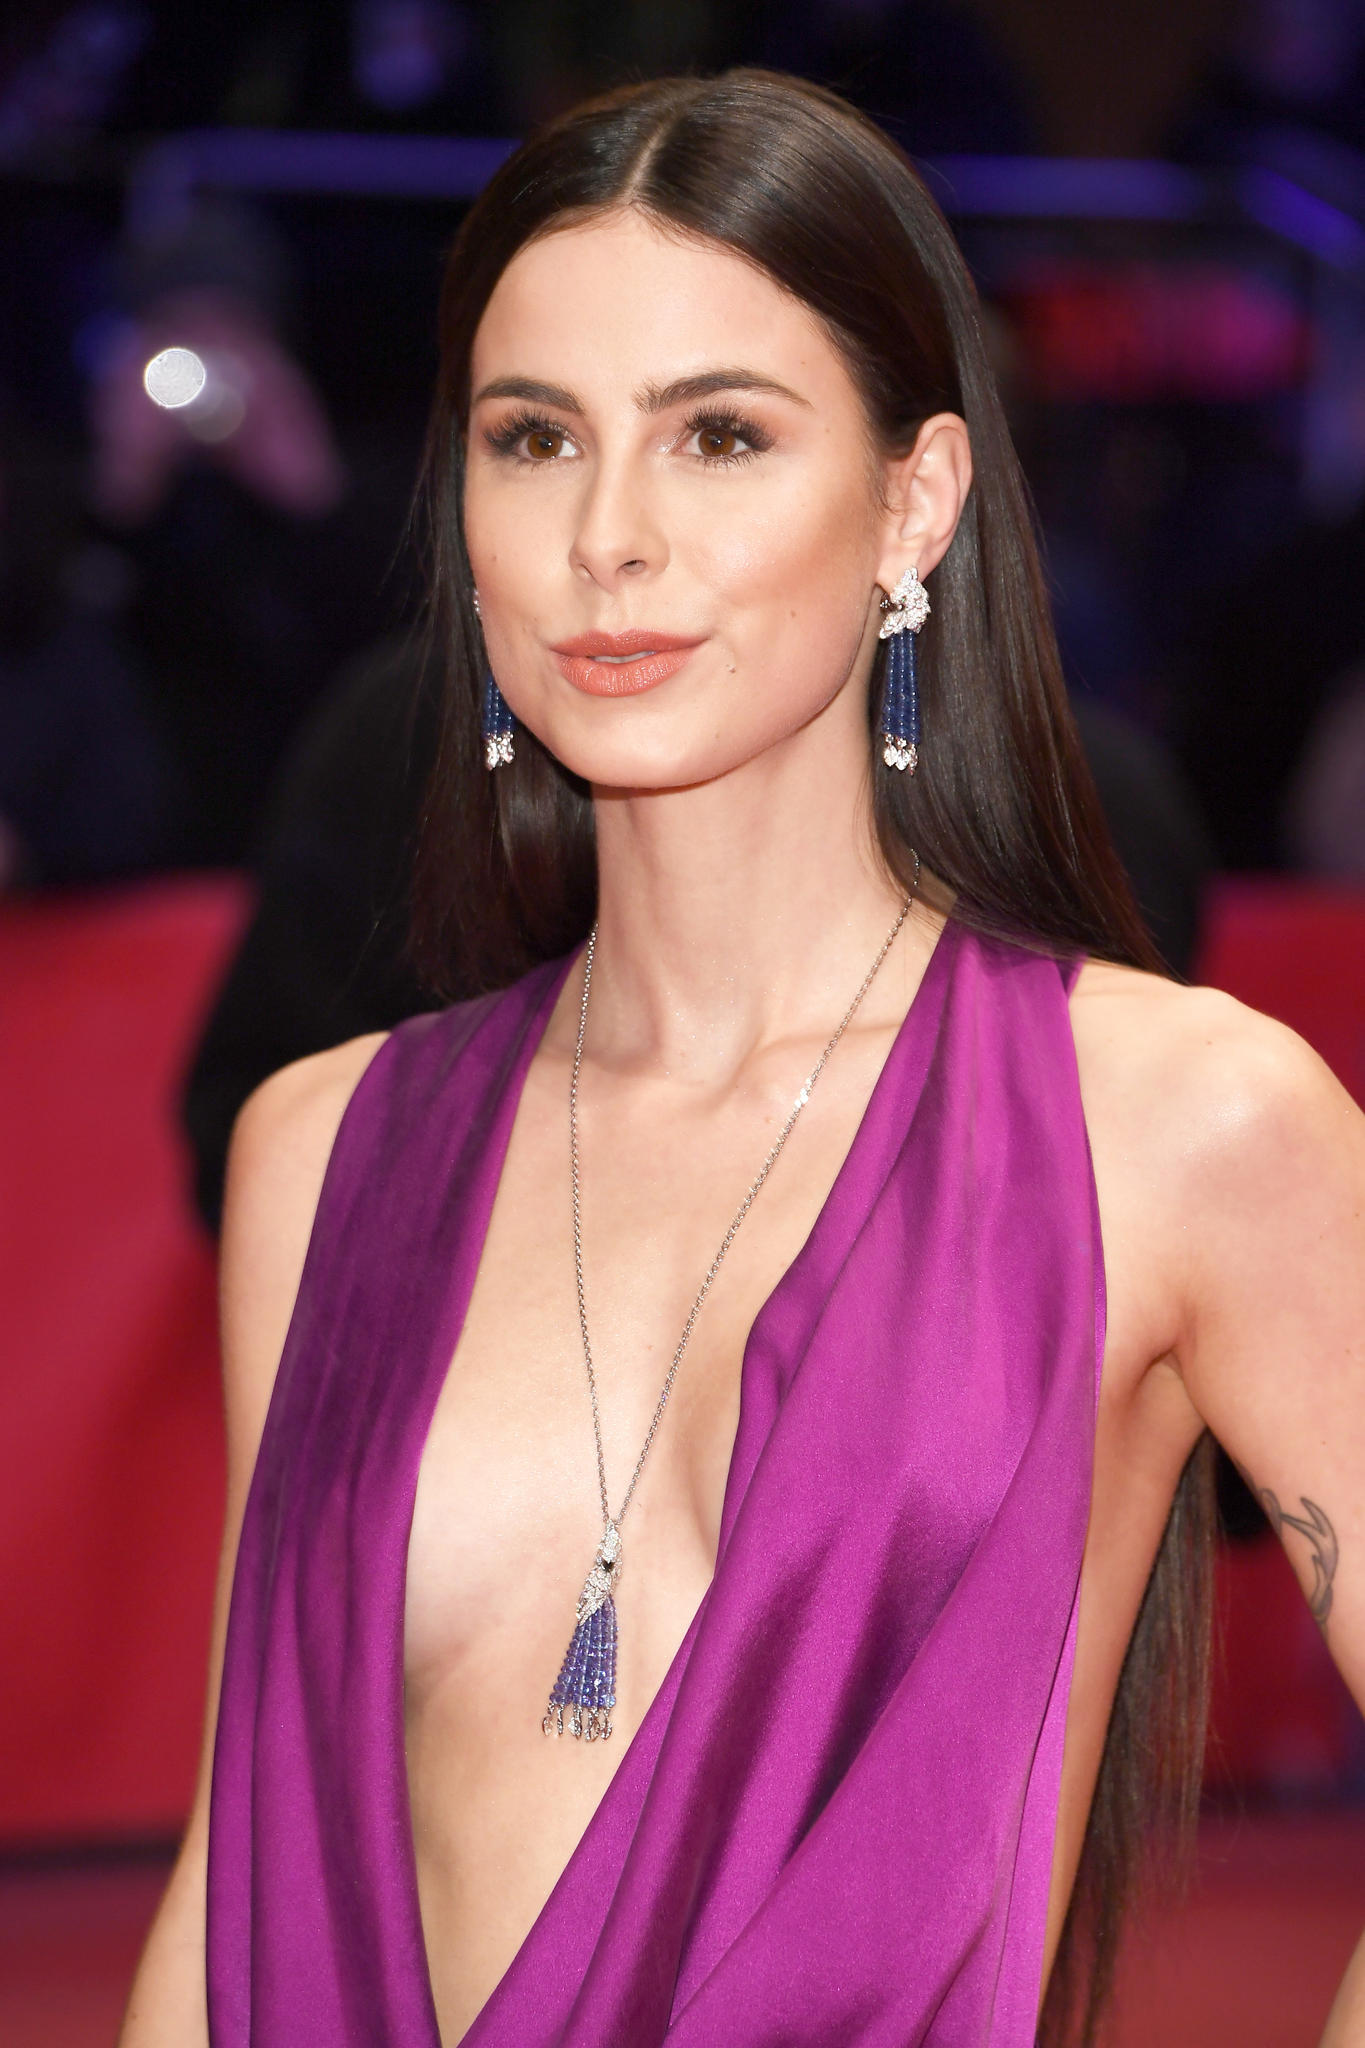 lena meyer landrut hot pics